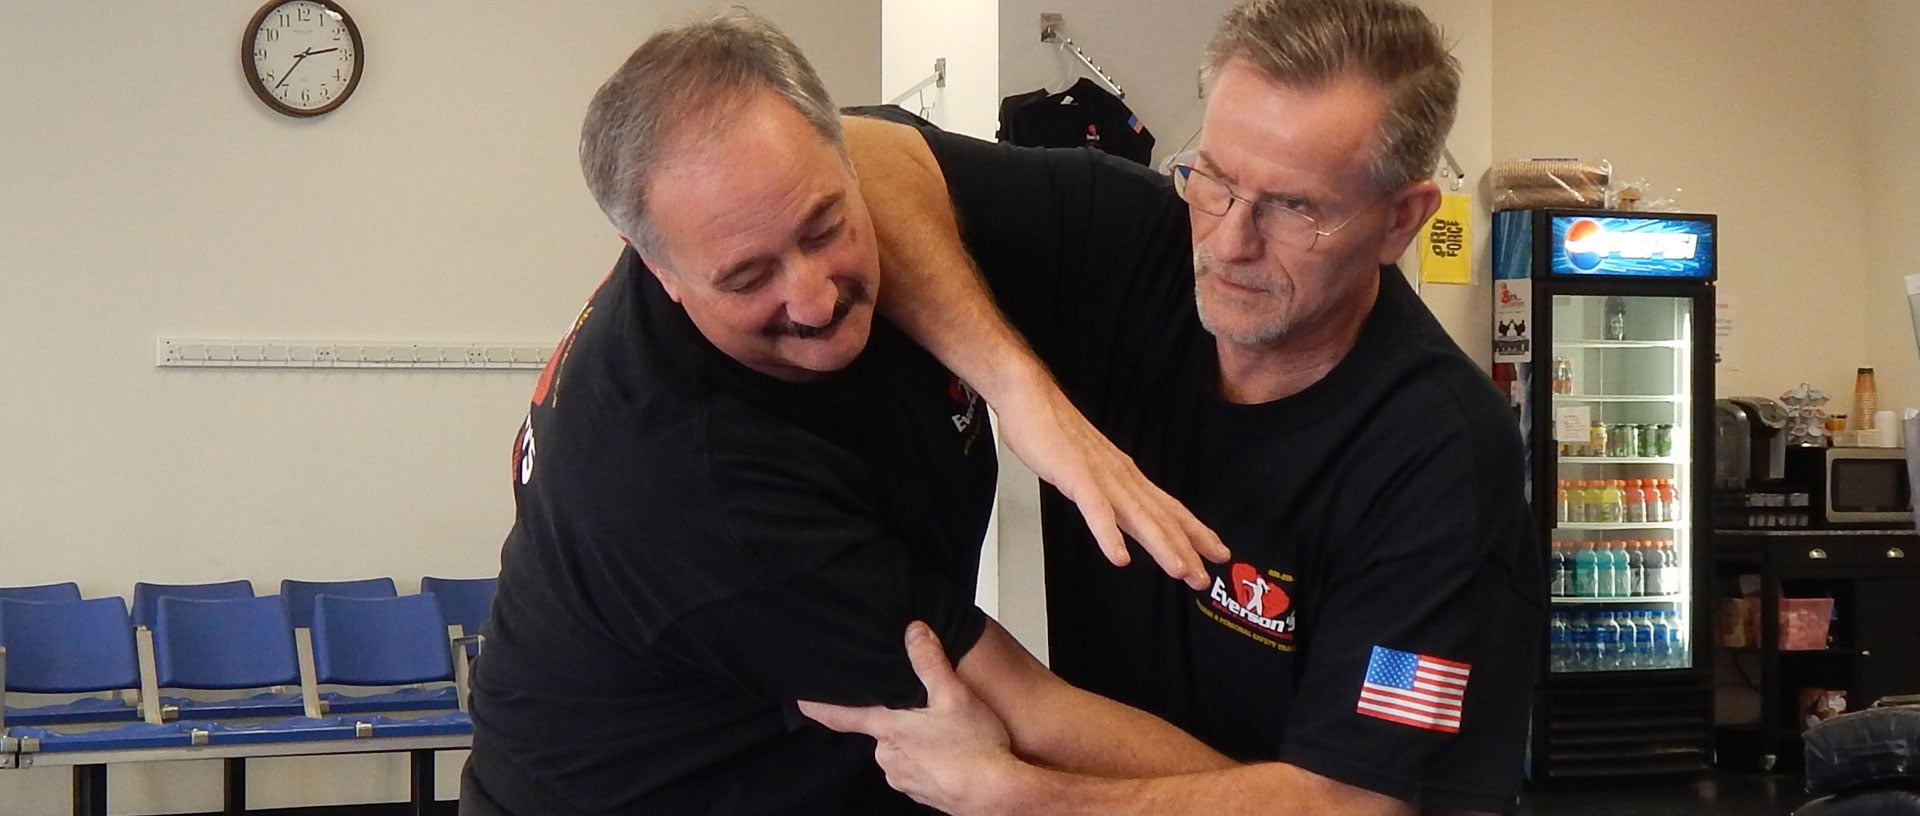 Everson's Karate Krav Maga Self Defense